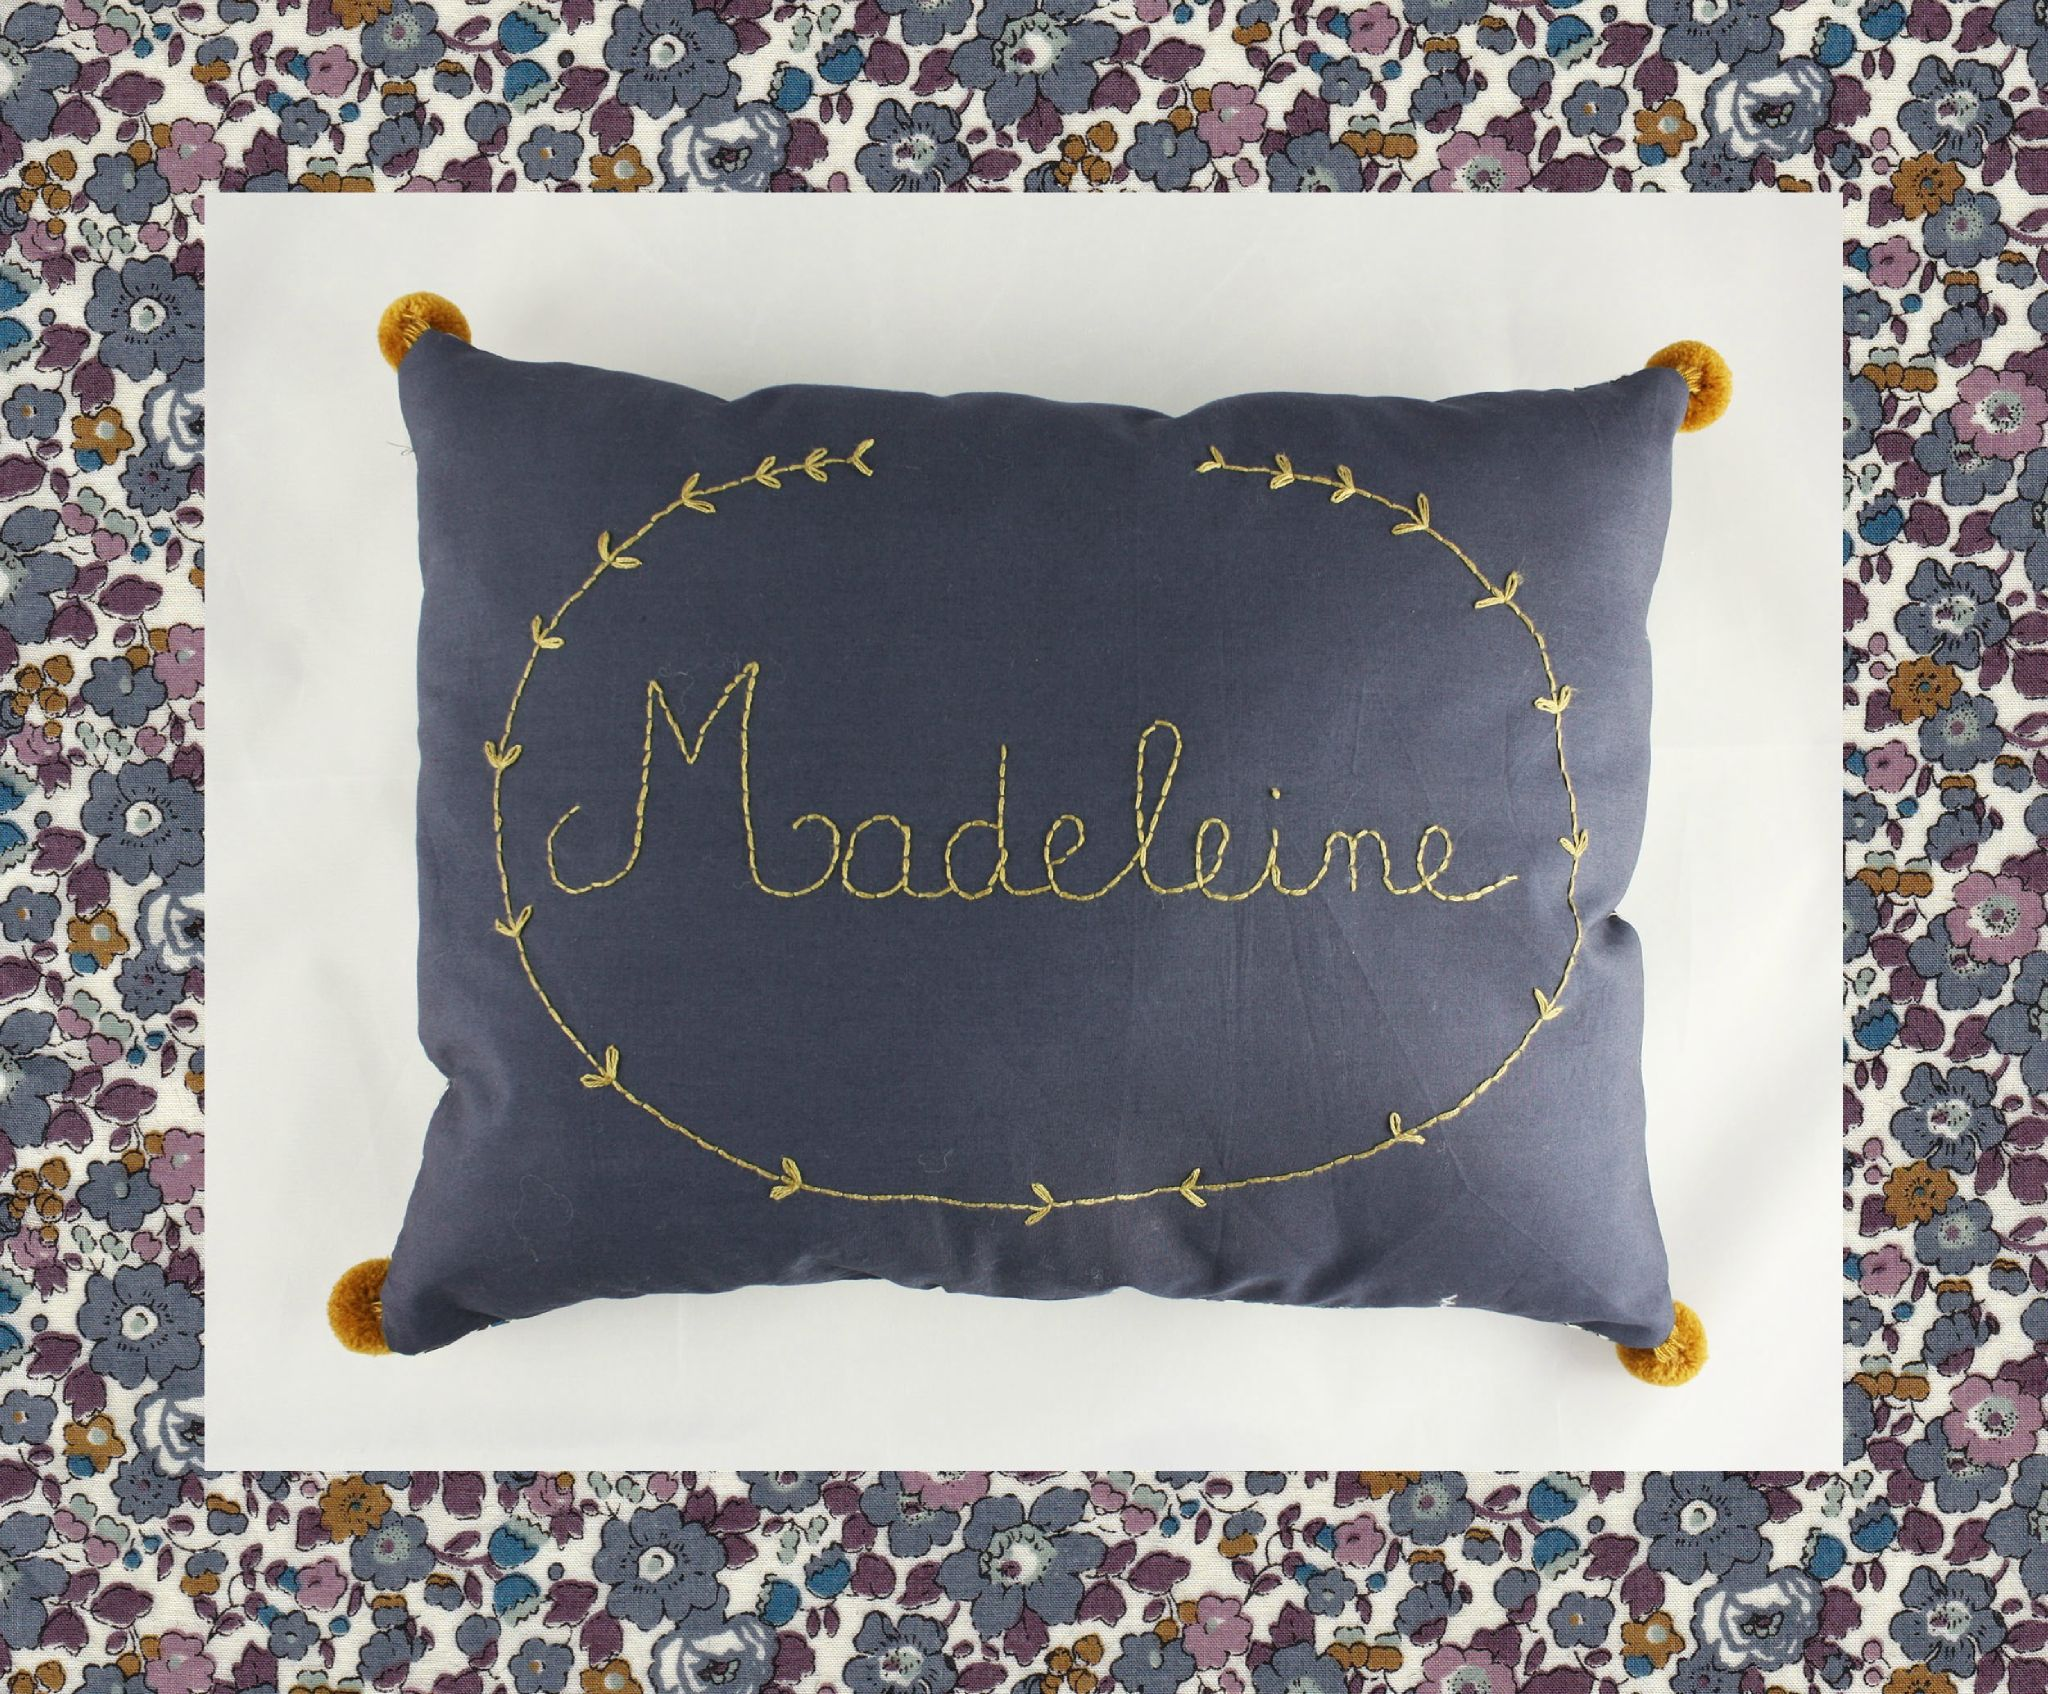 Pour Madeleine Mes Petits Riens Coussin Personnalise Coussin Brode Coussin Liberty